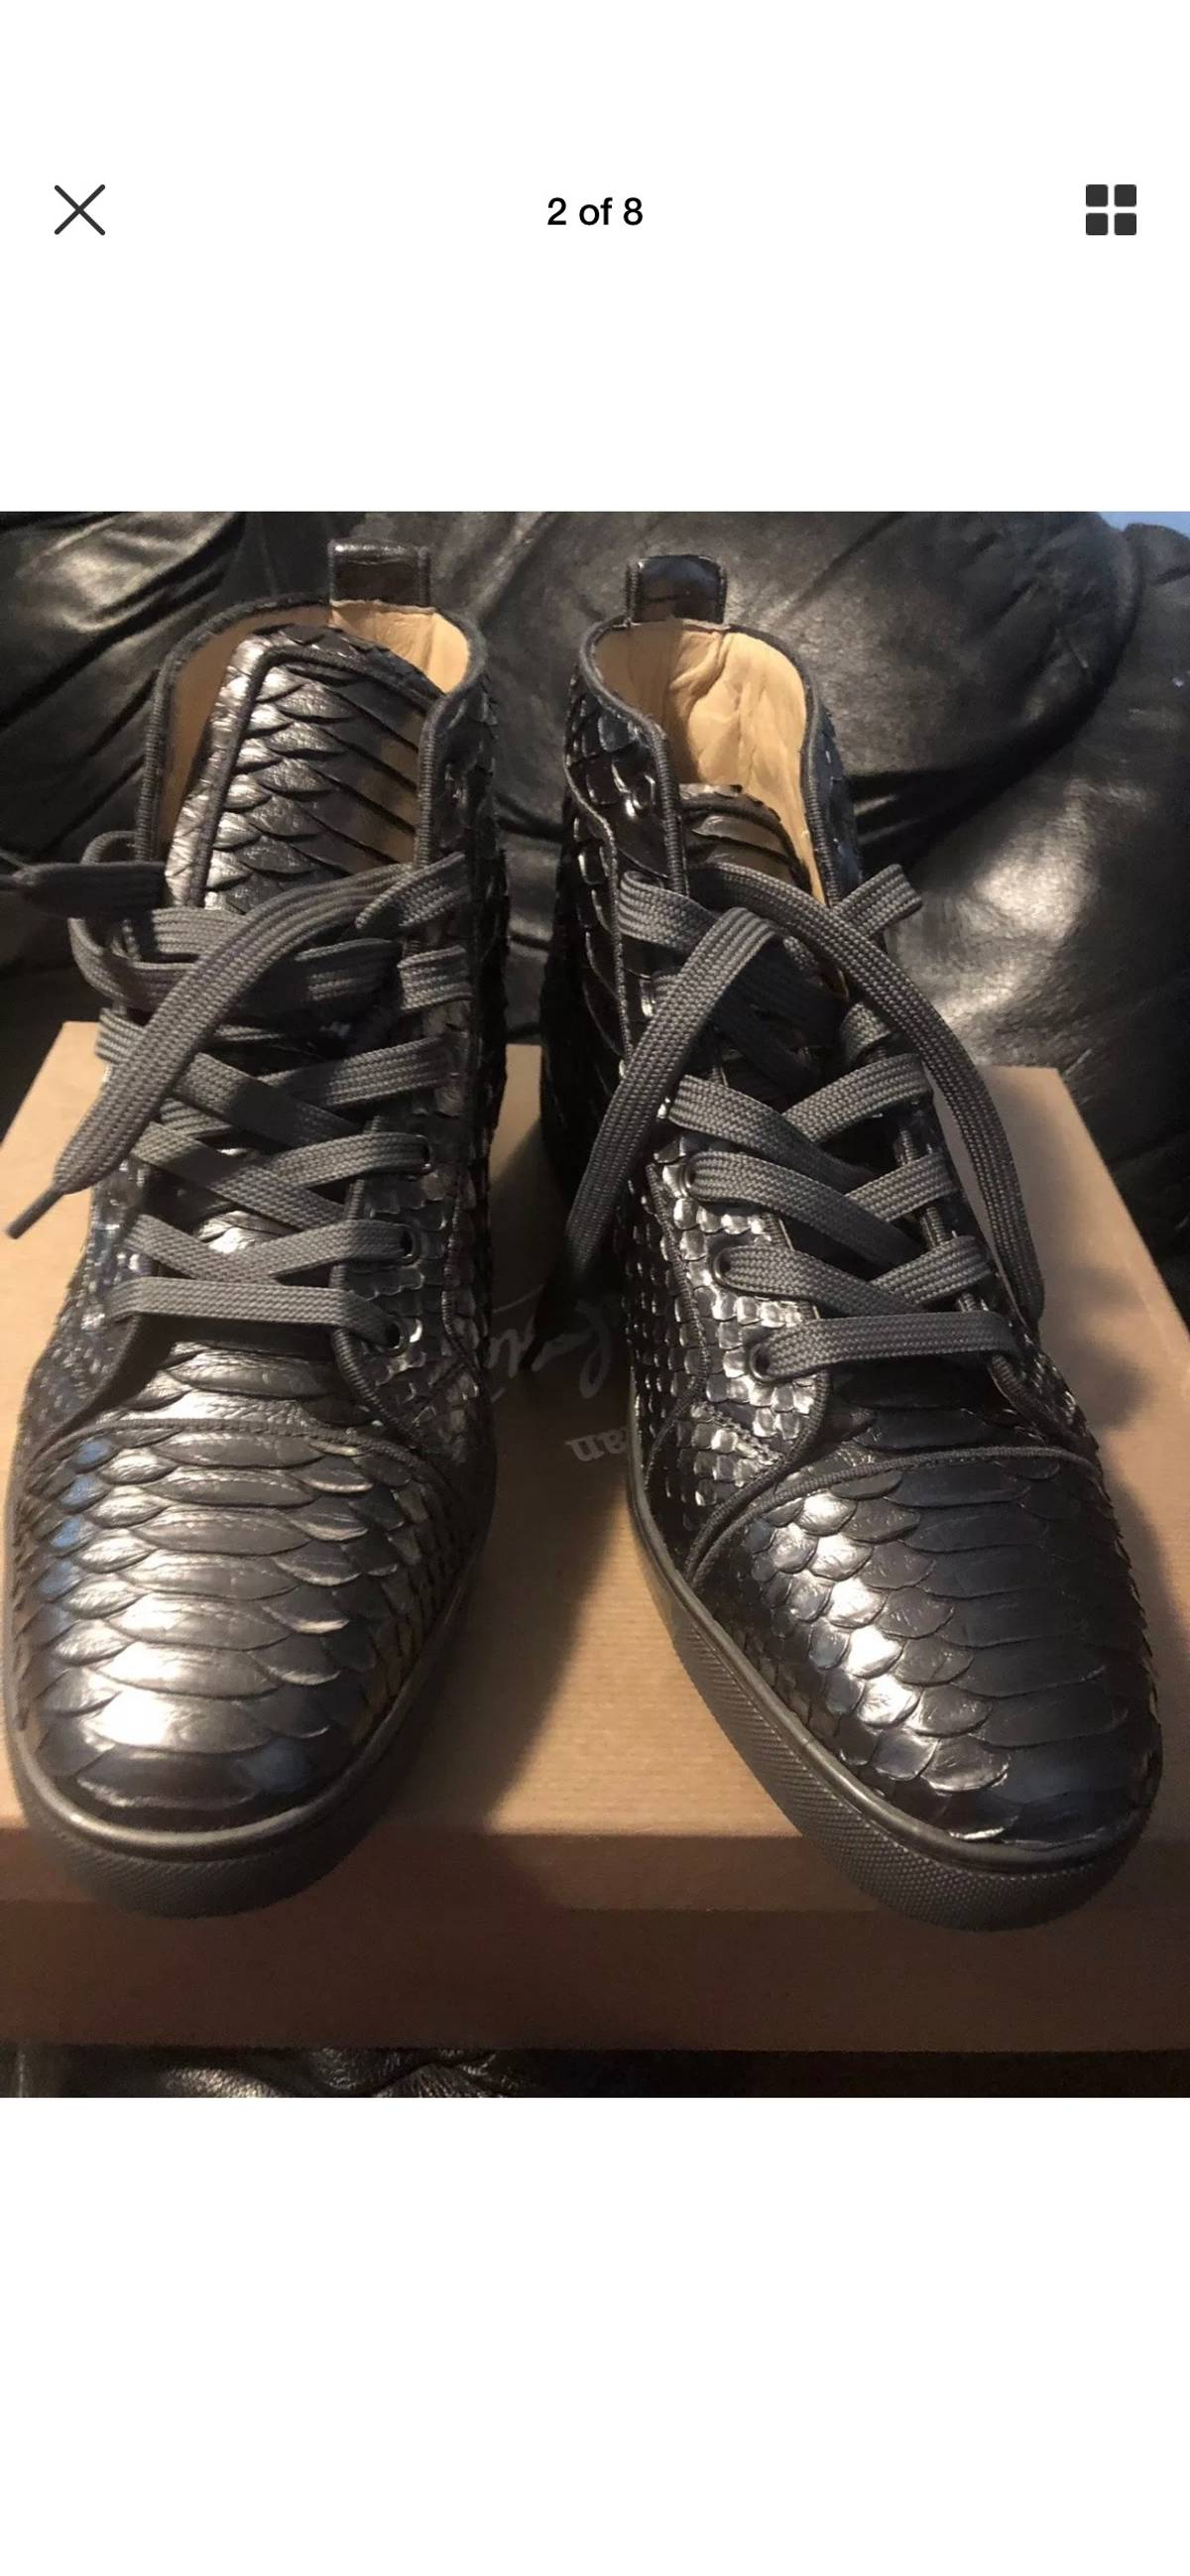 outlet store 163f1 17605 Christian Louboutin Python Christian Louboutin Men's Sneakers New With The  Box Size 13 $850